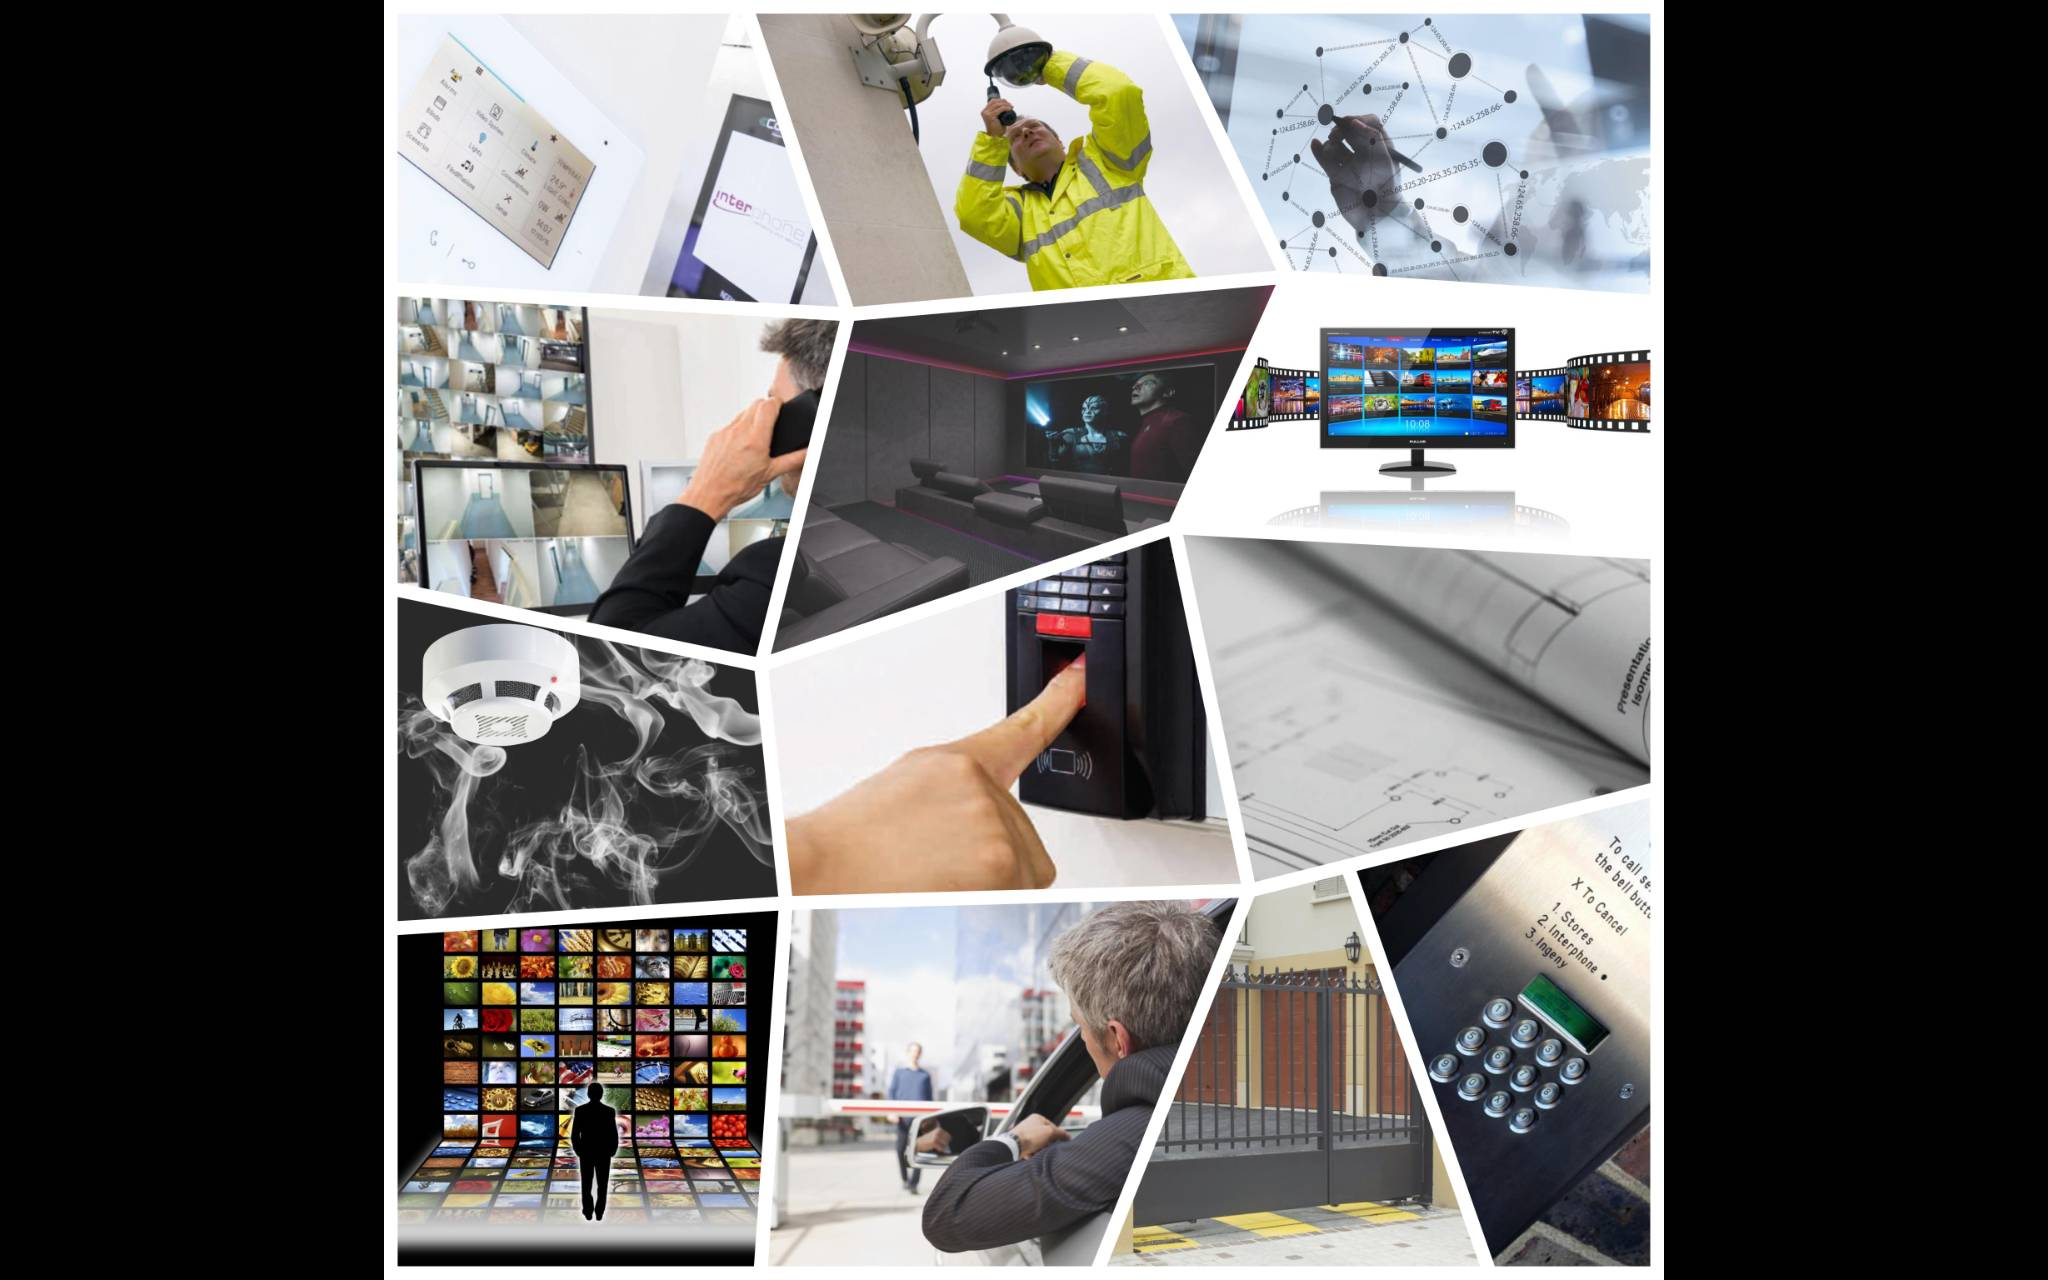 Interphone announces product innovation and training event for commercial residential sector